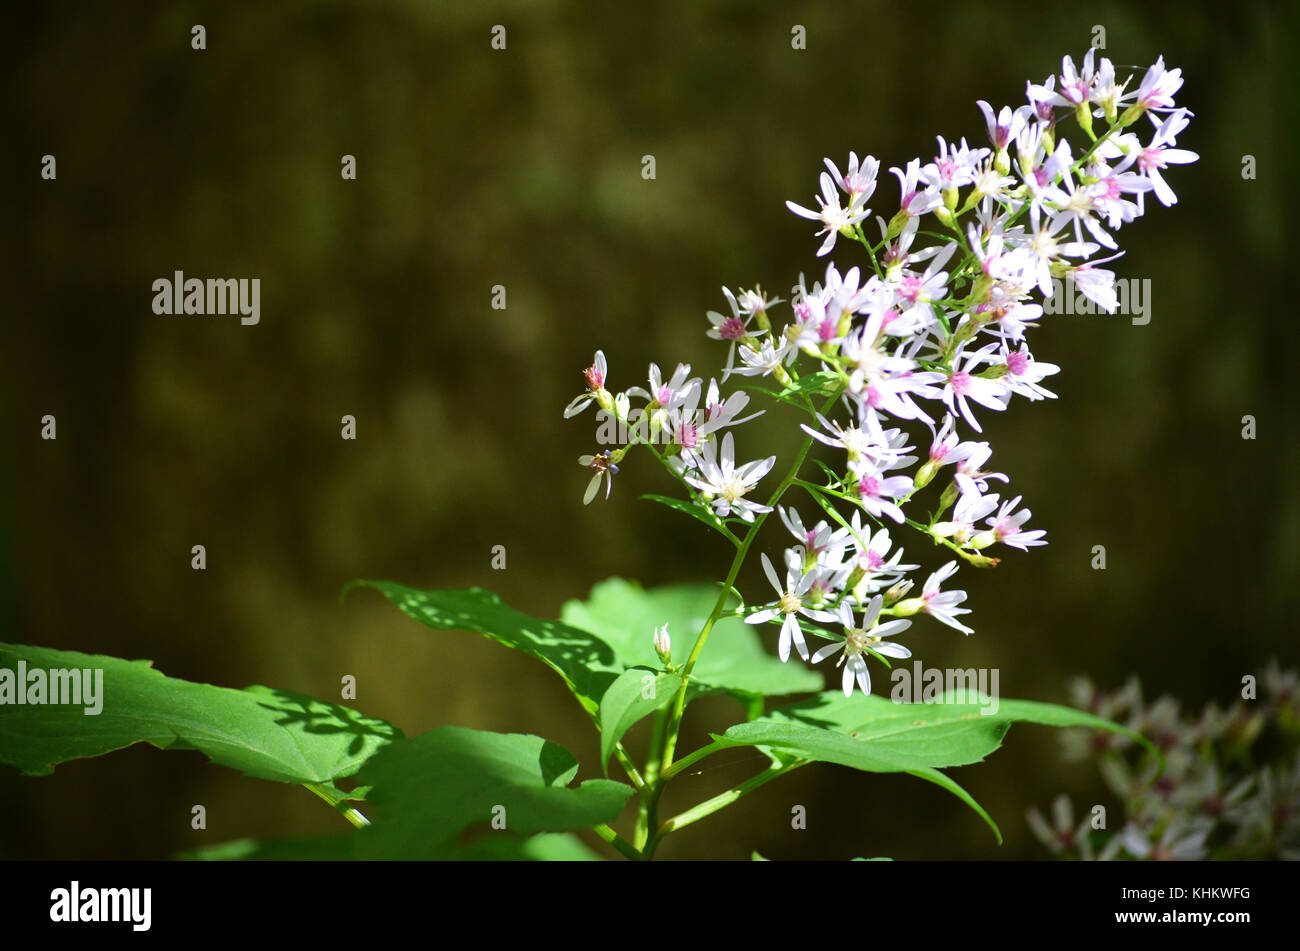 Yellow And Black Butterfly On Small Purple Flower Cluster With